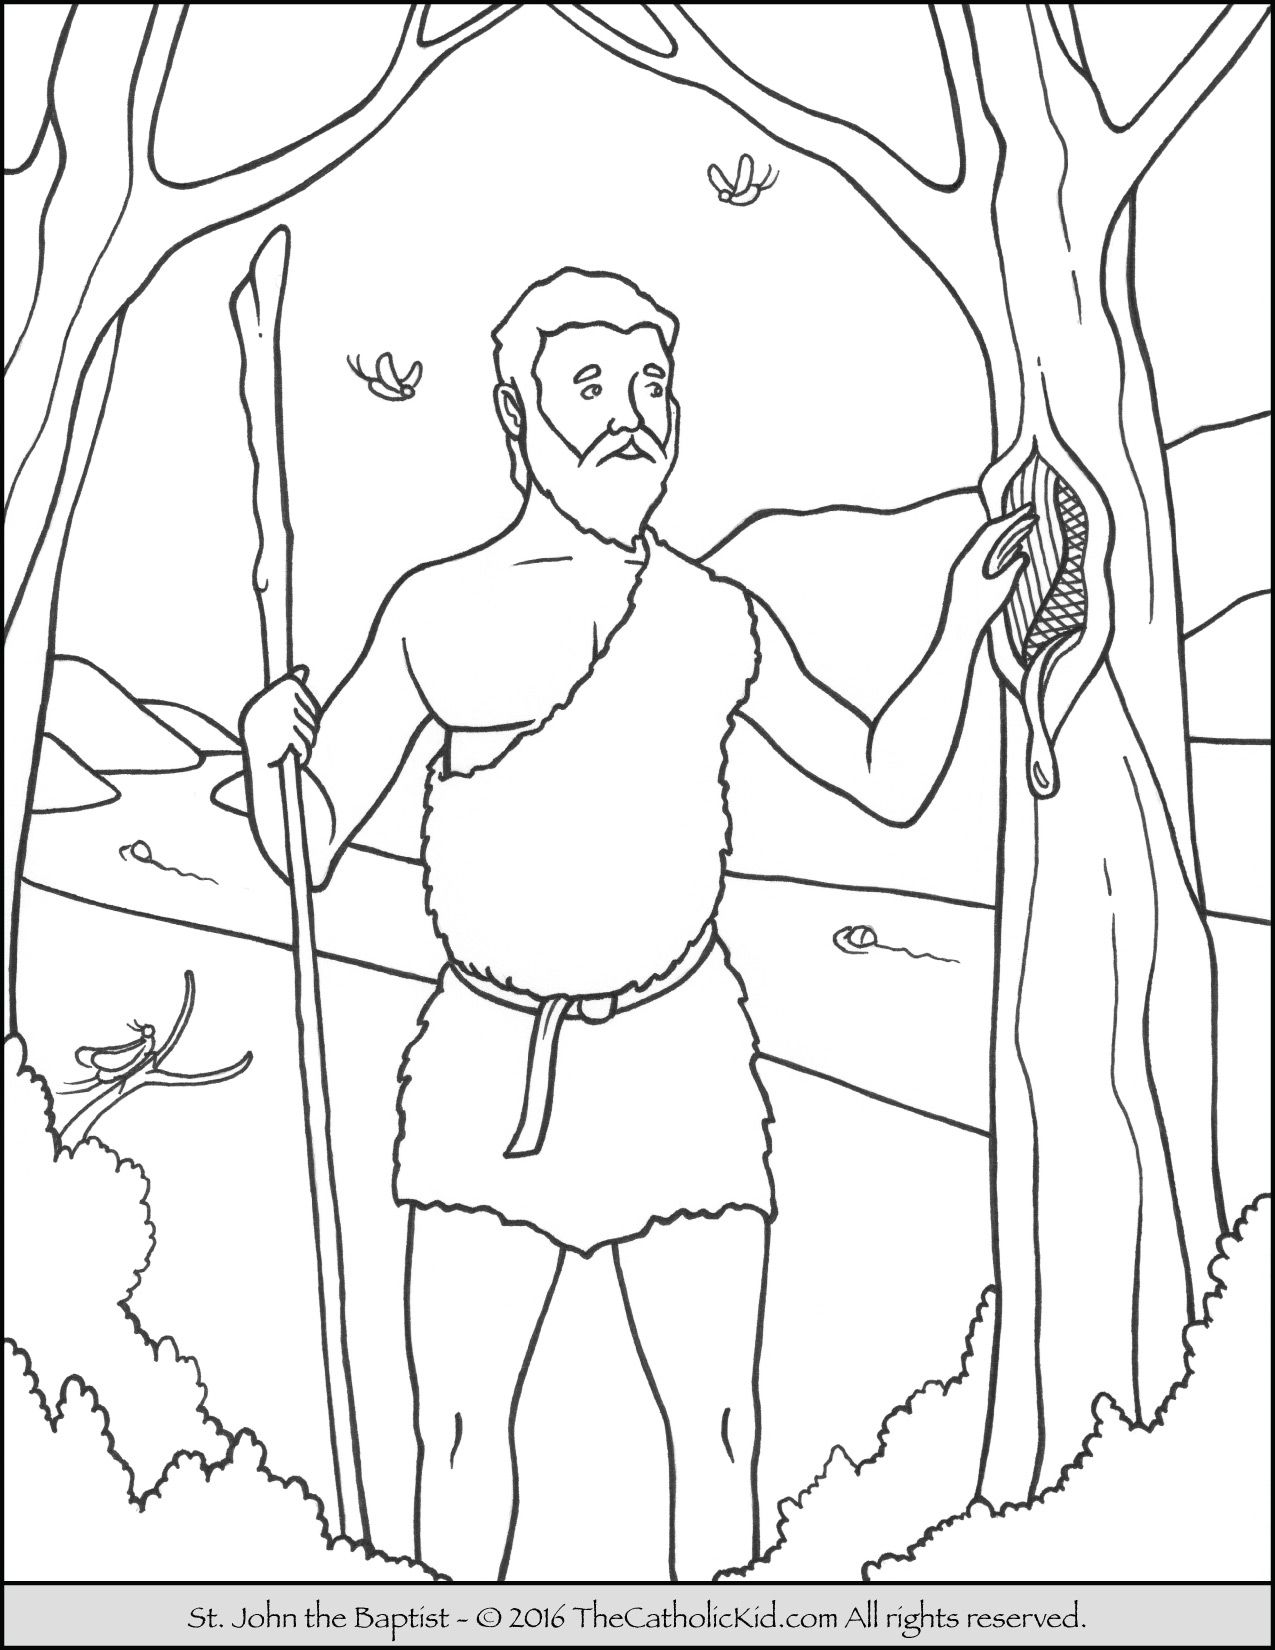 john the baptist coloring pages printable cartoon of john the baptist coloring page netart baptist the coloring john printable pages